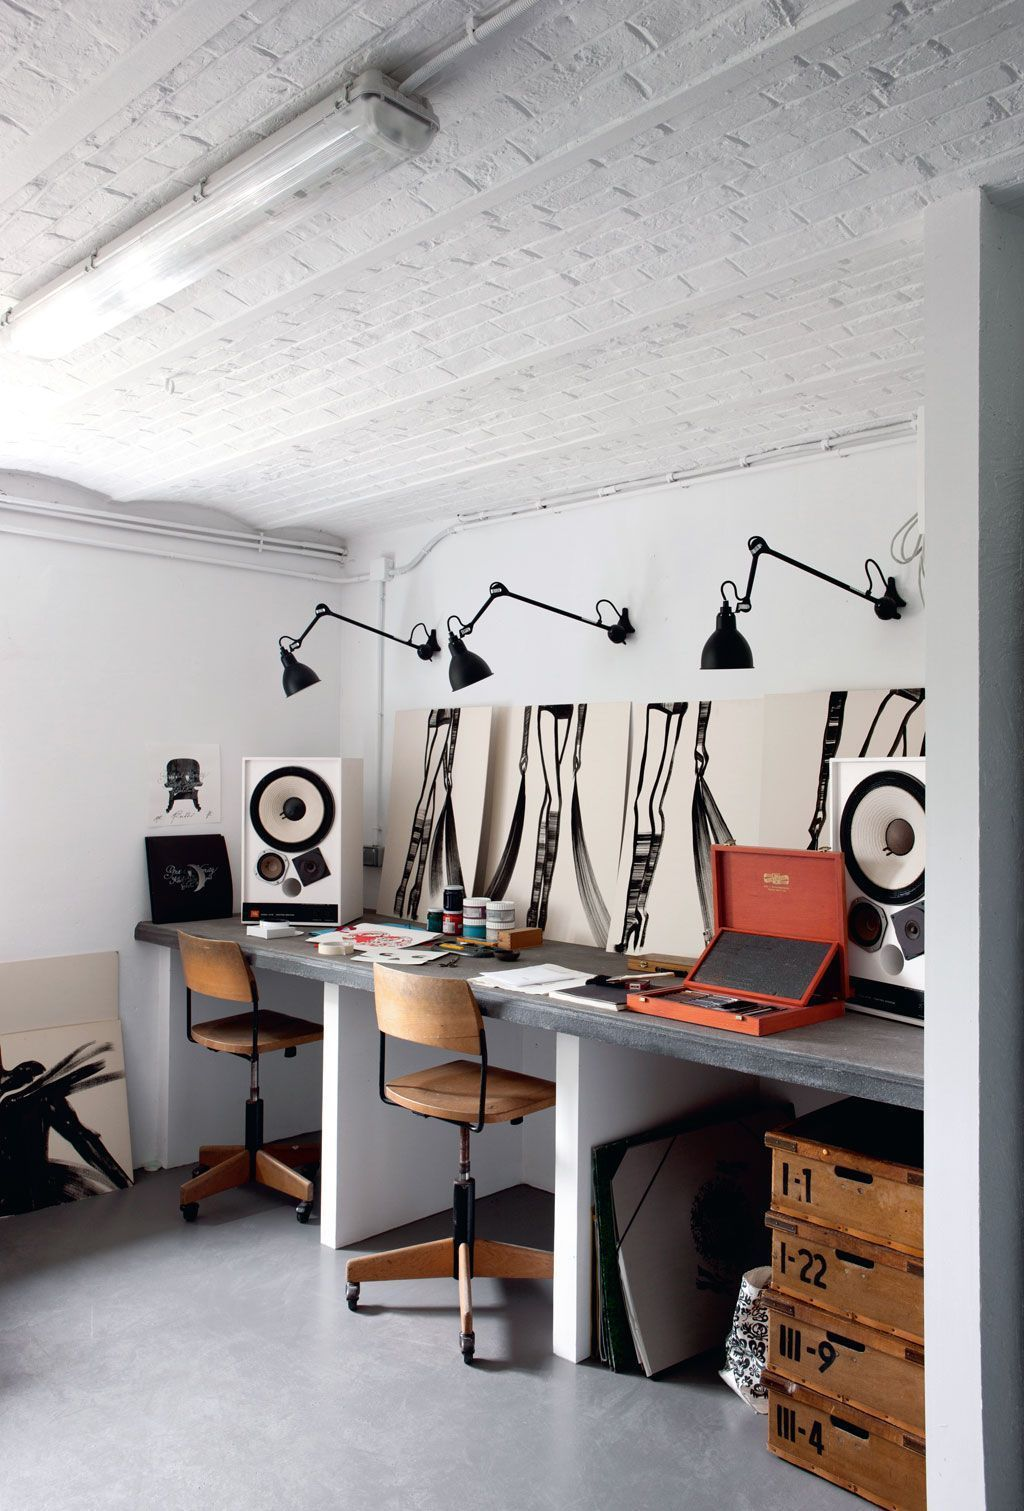 This is one more working space, a shared one, done in industrial style